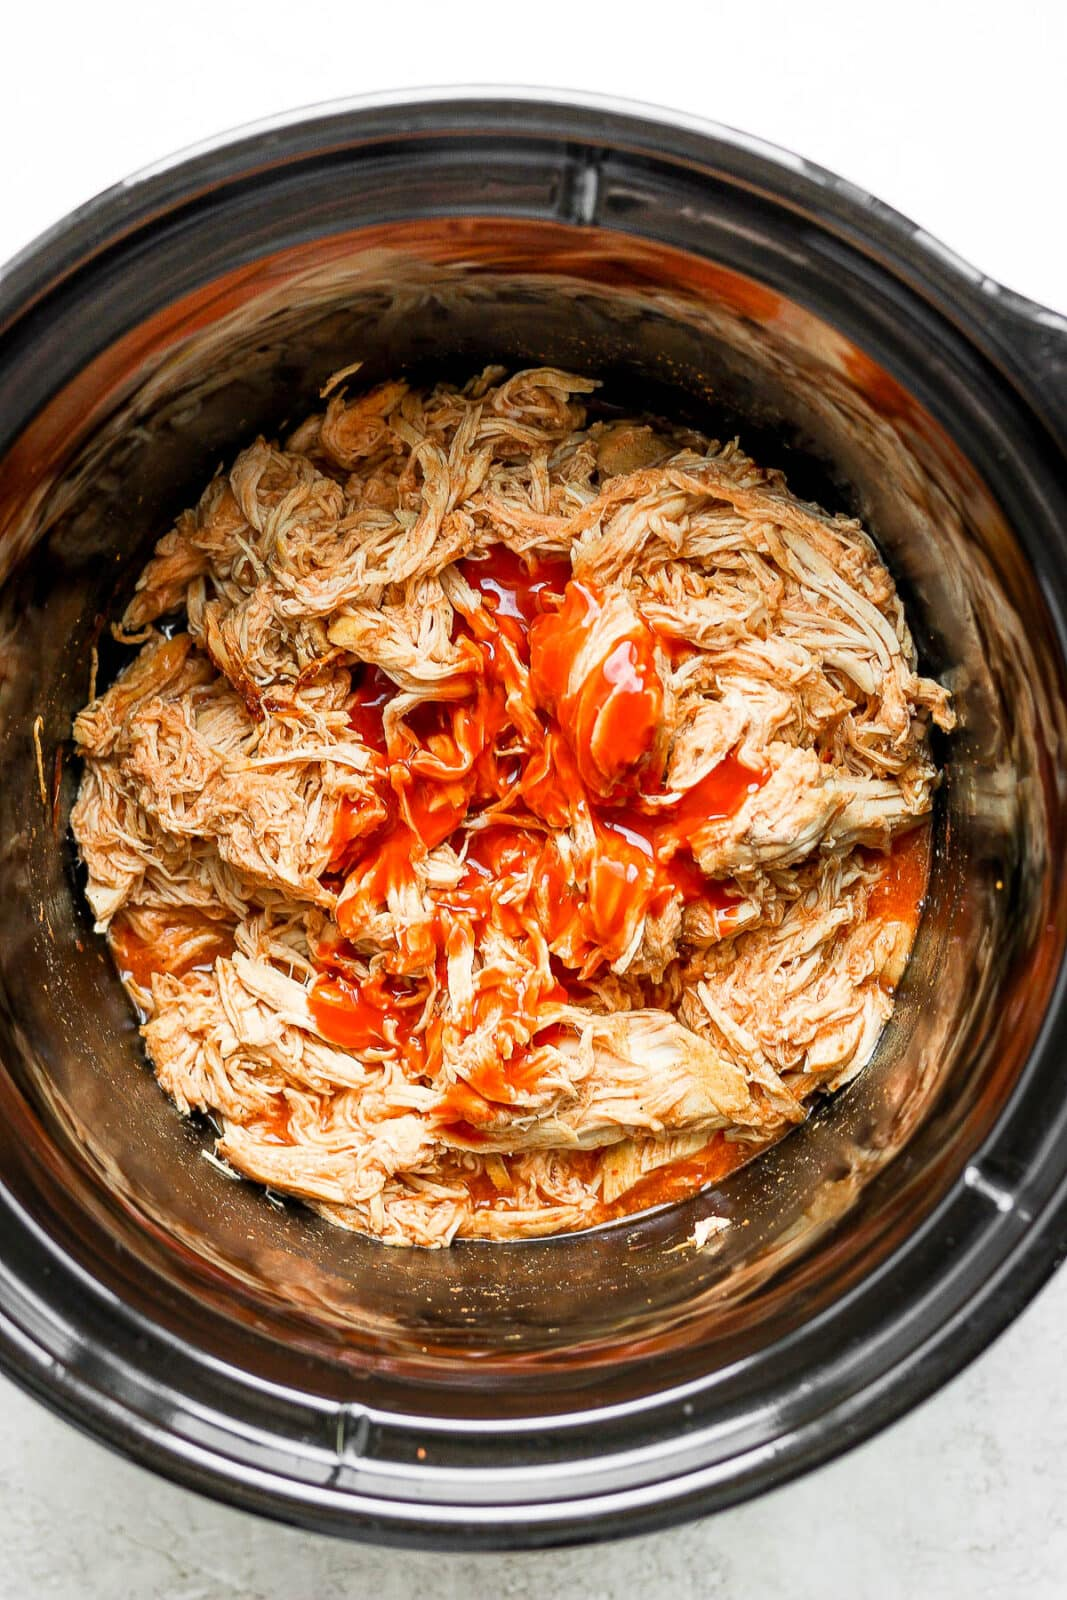 Slow cooker buffalo chicken with the last of the buffalo sauce added.